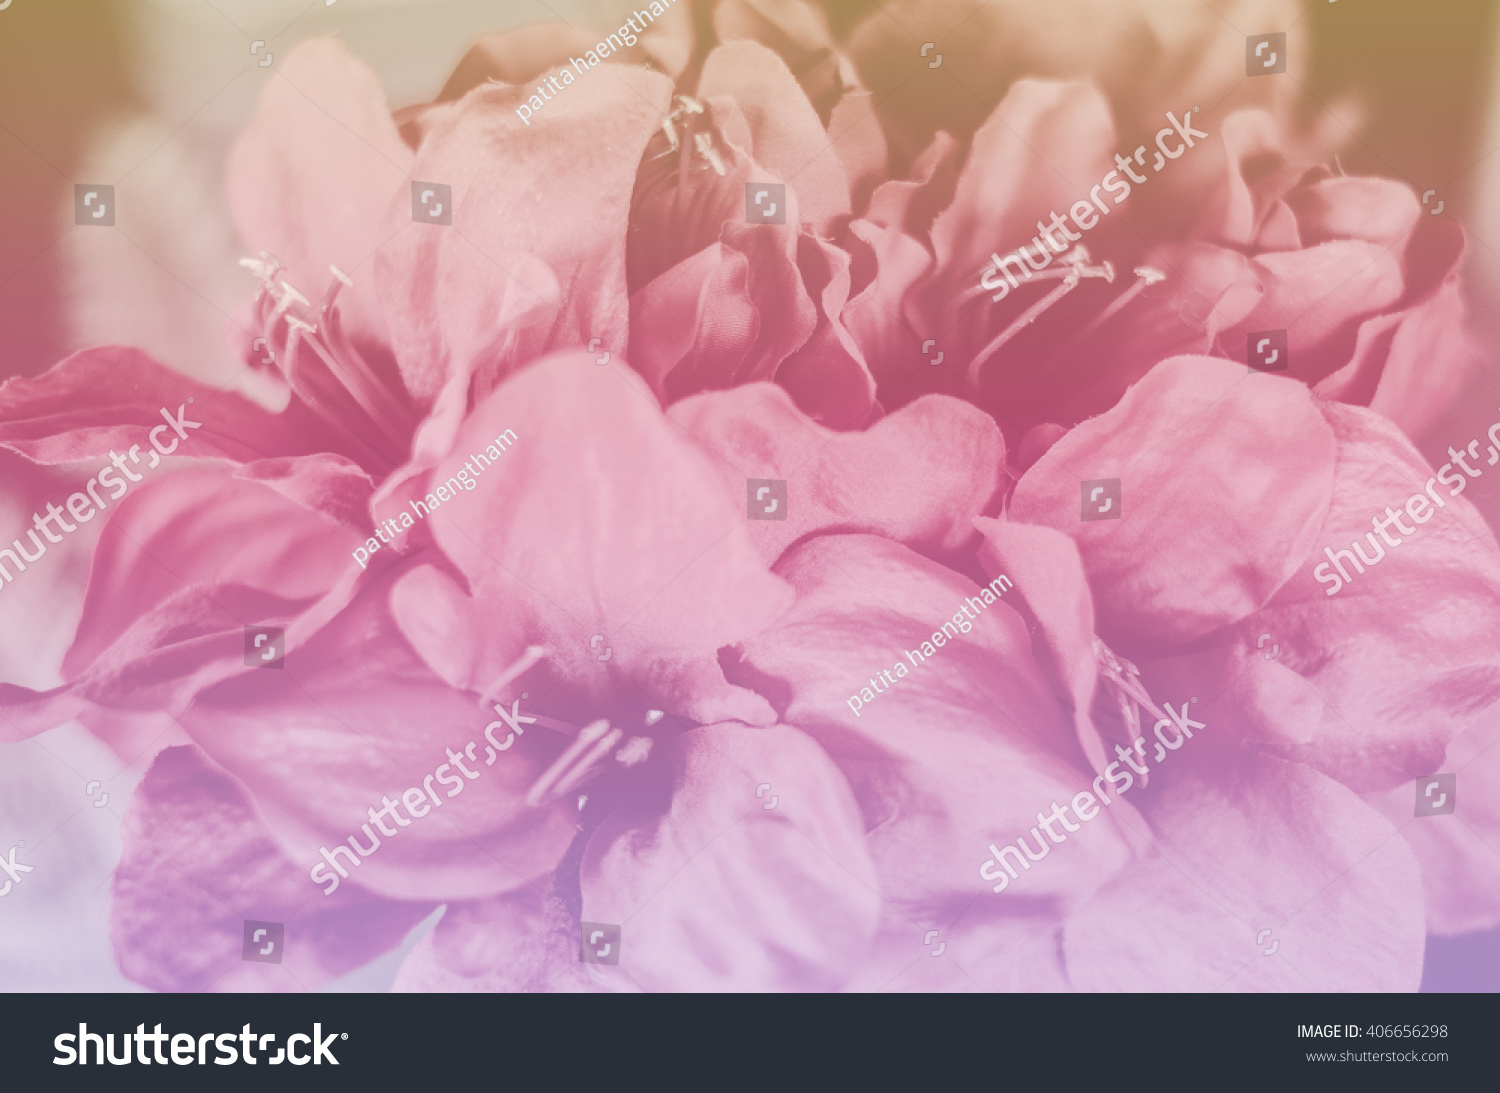 Flowers Background Blurred Blur Color Wallpaper Nature Soft Light Abstract